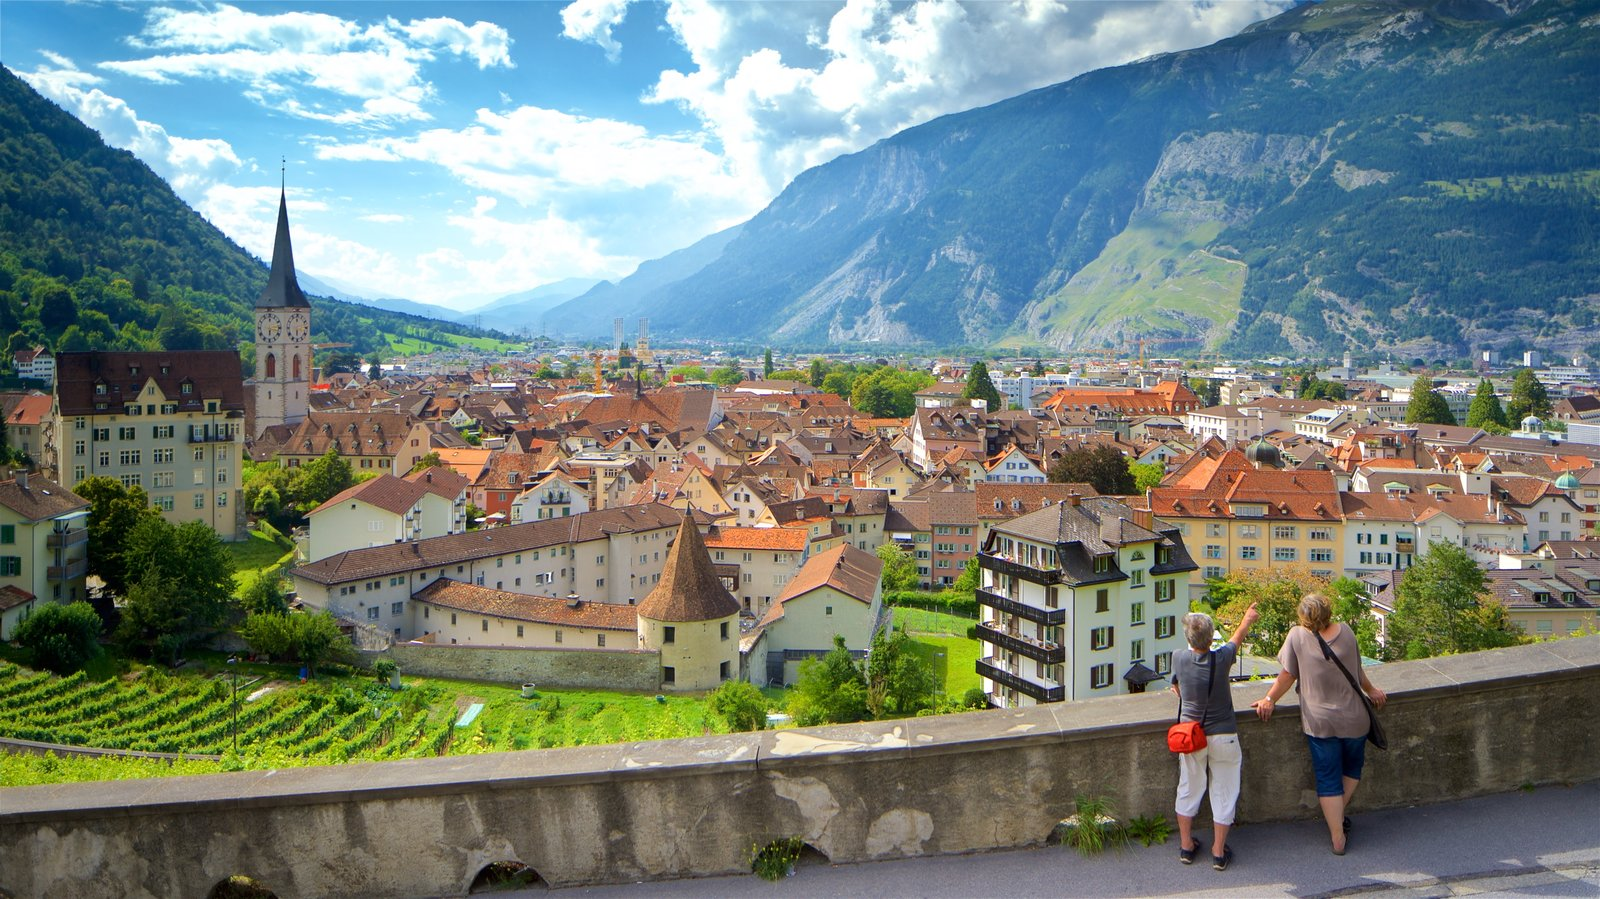 Chur which includes landscape views, a small town or village and mountains